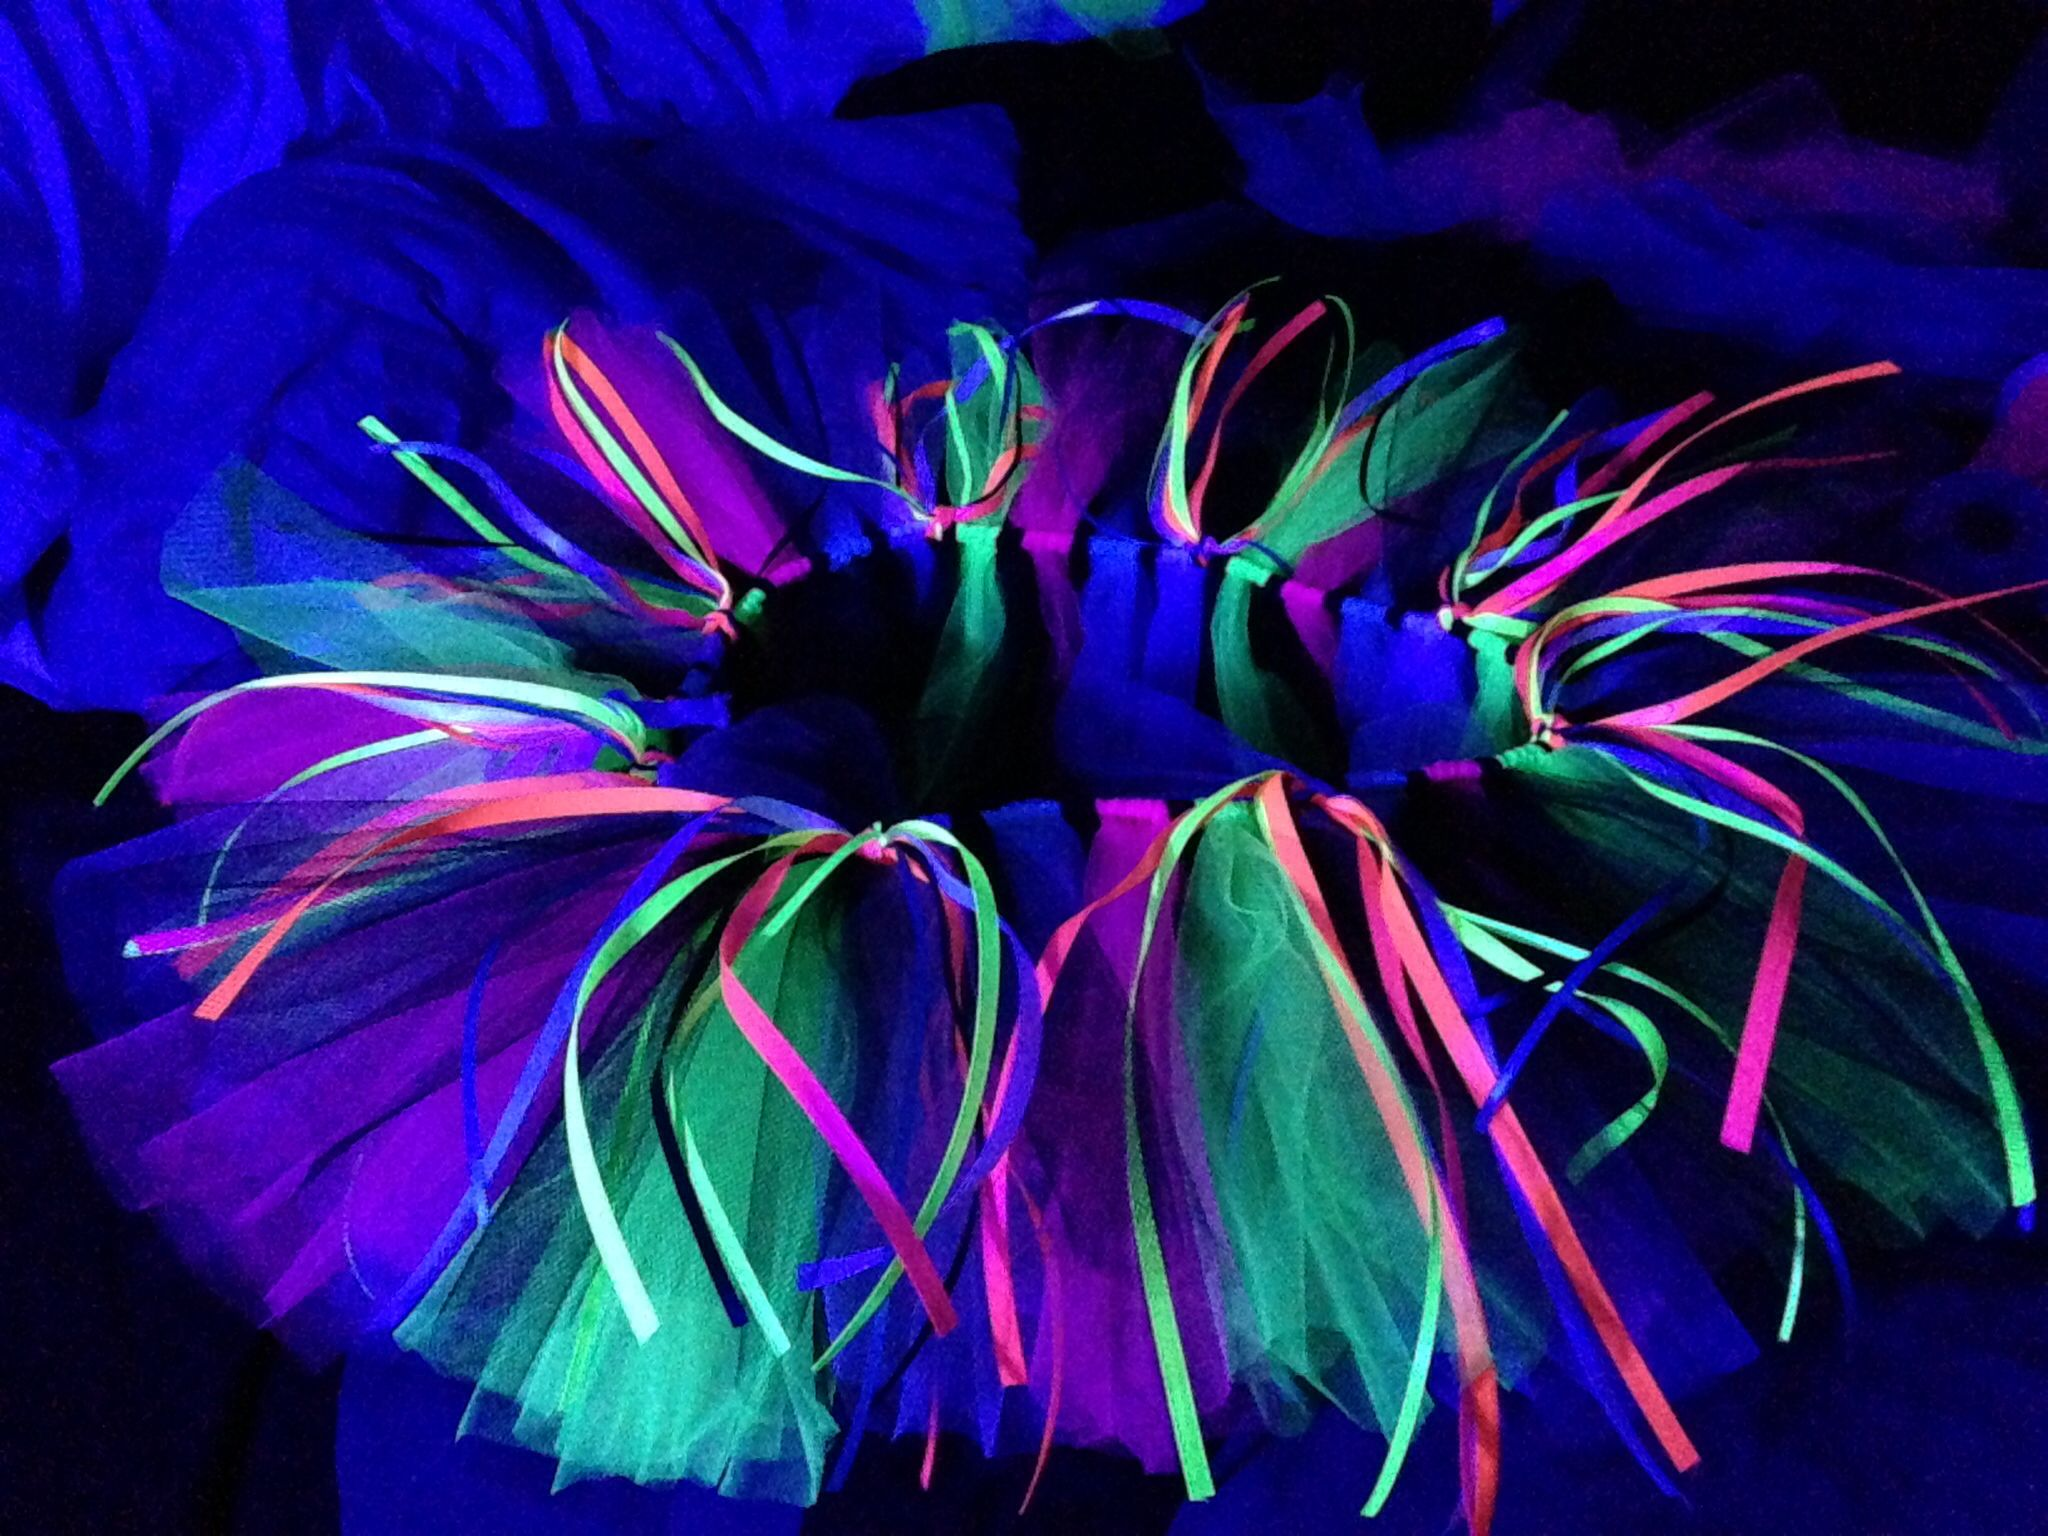 Black Light Tutu I Made For The Glow Run Fitness Pinterest Wiring A Lighted Rocker Switch Submited Images Pic2fly